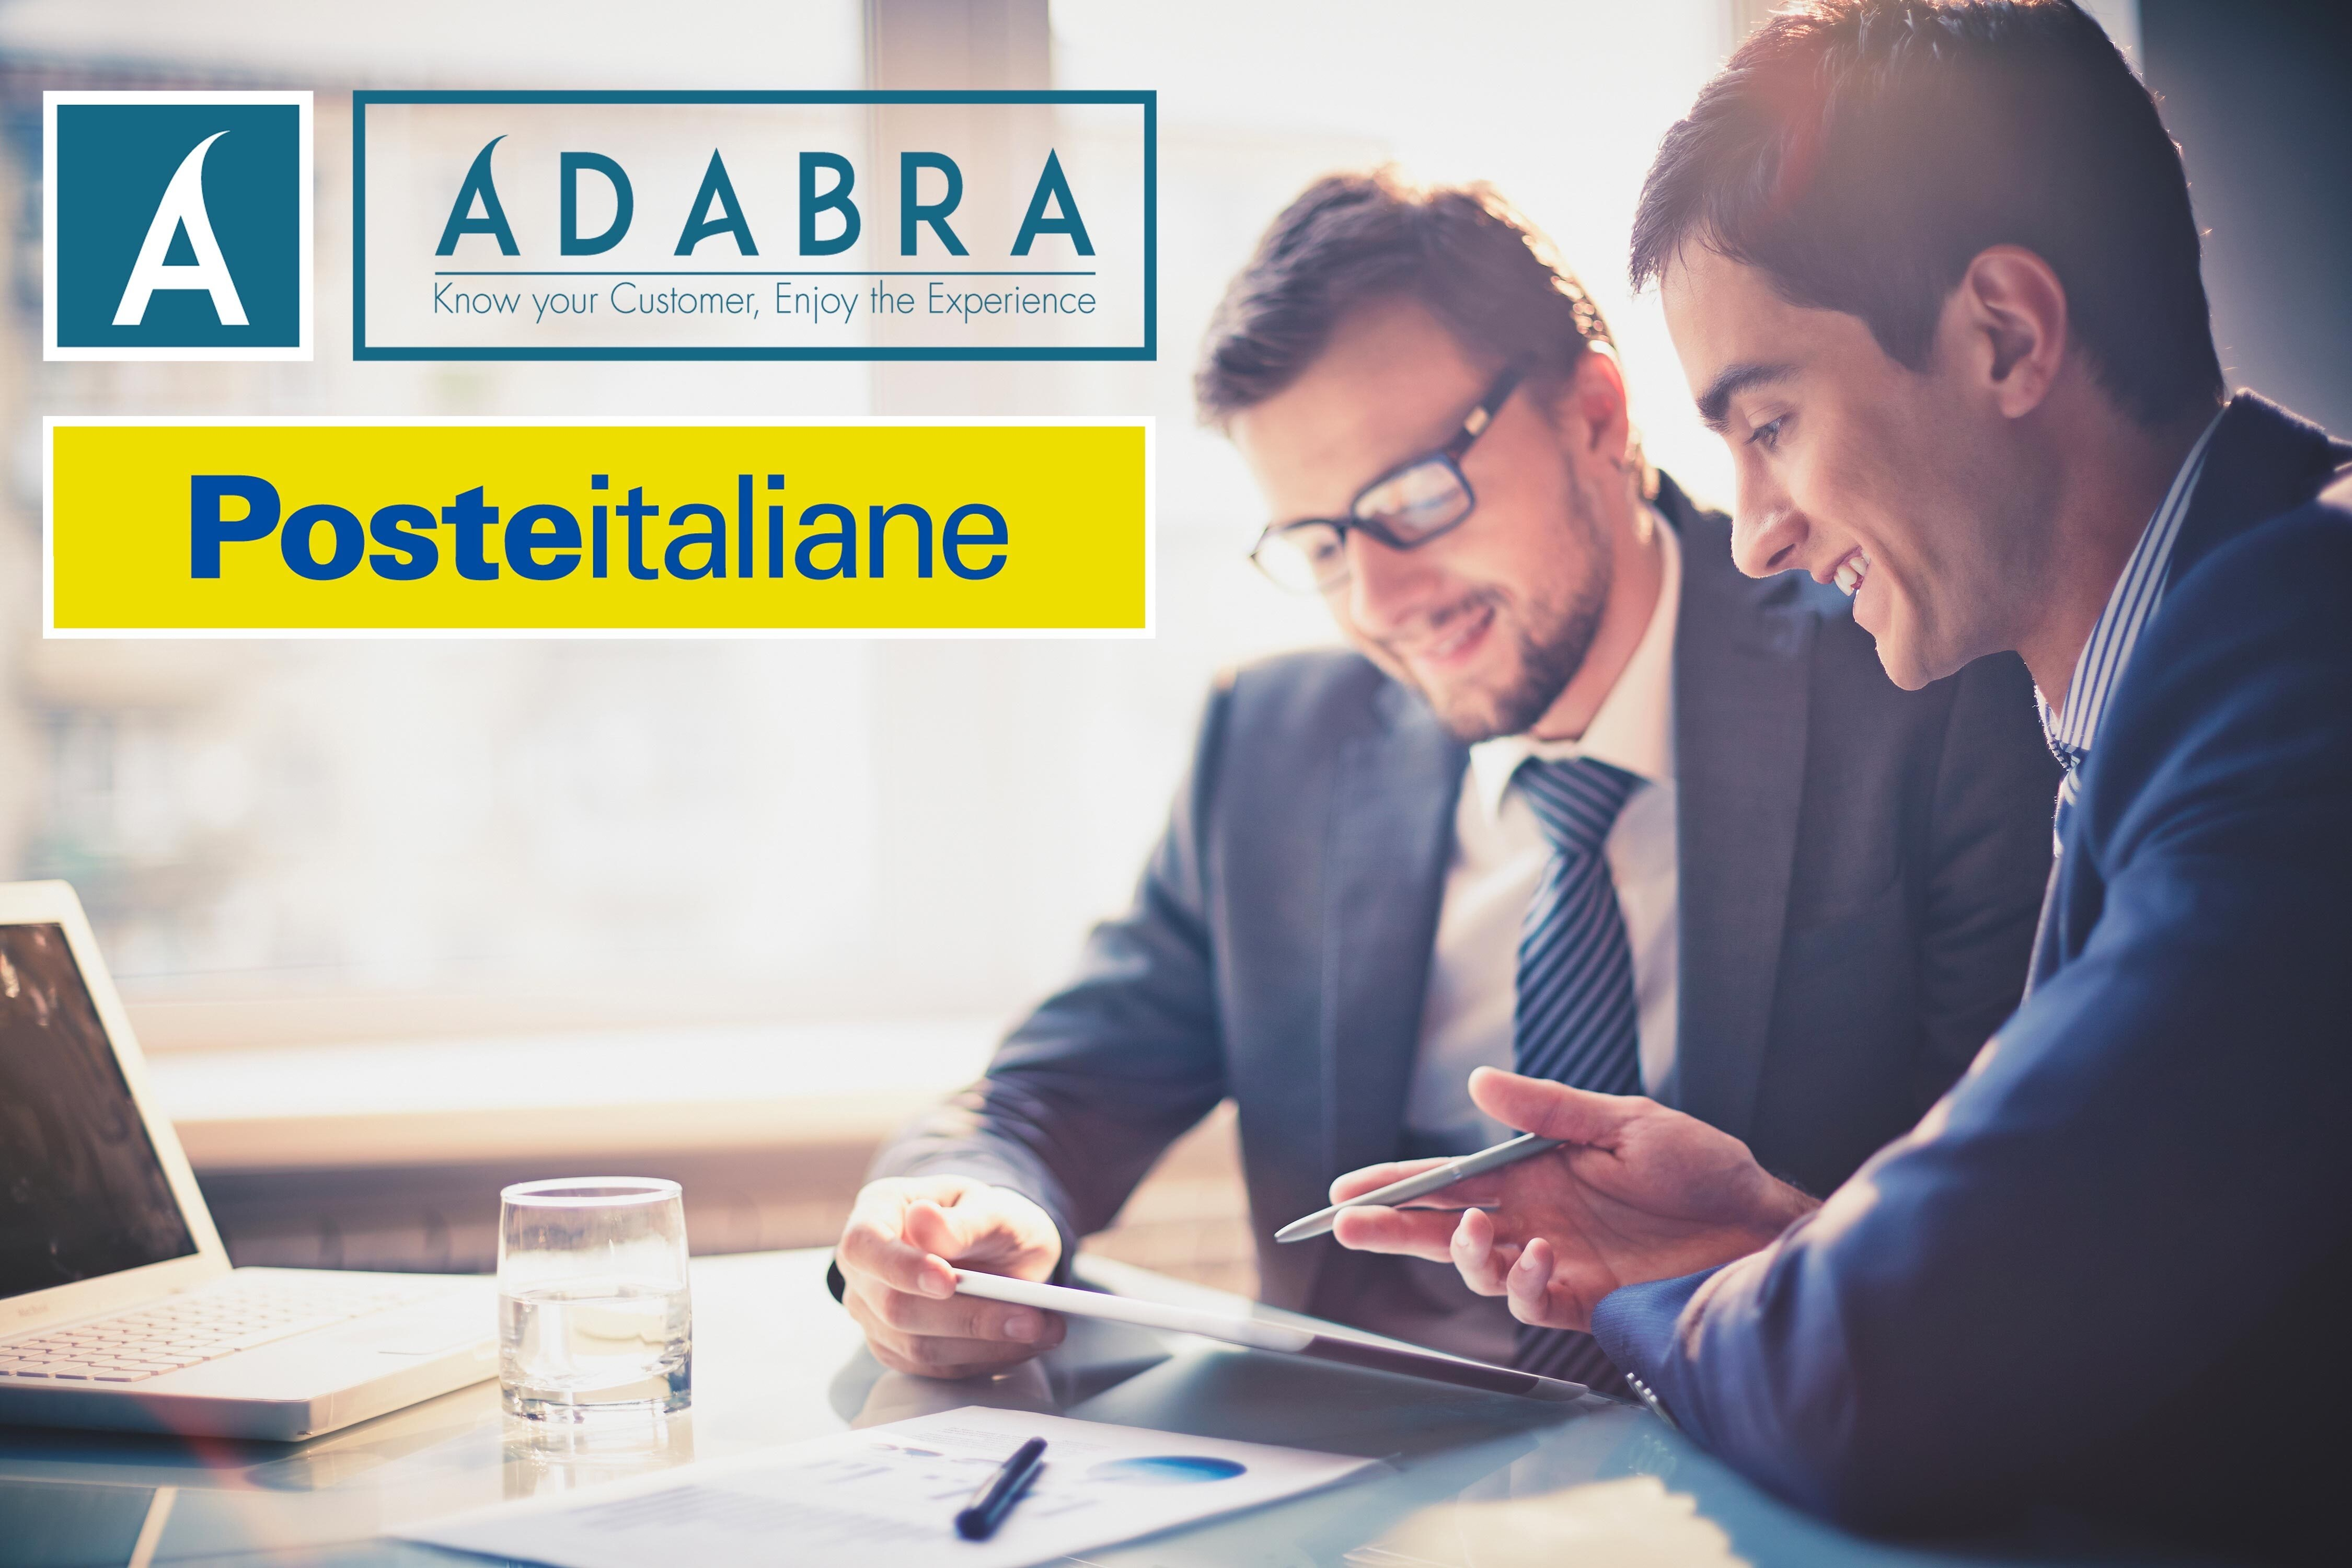 Adabra for Poste Italiane: the web content personalization project gets underway